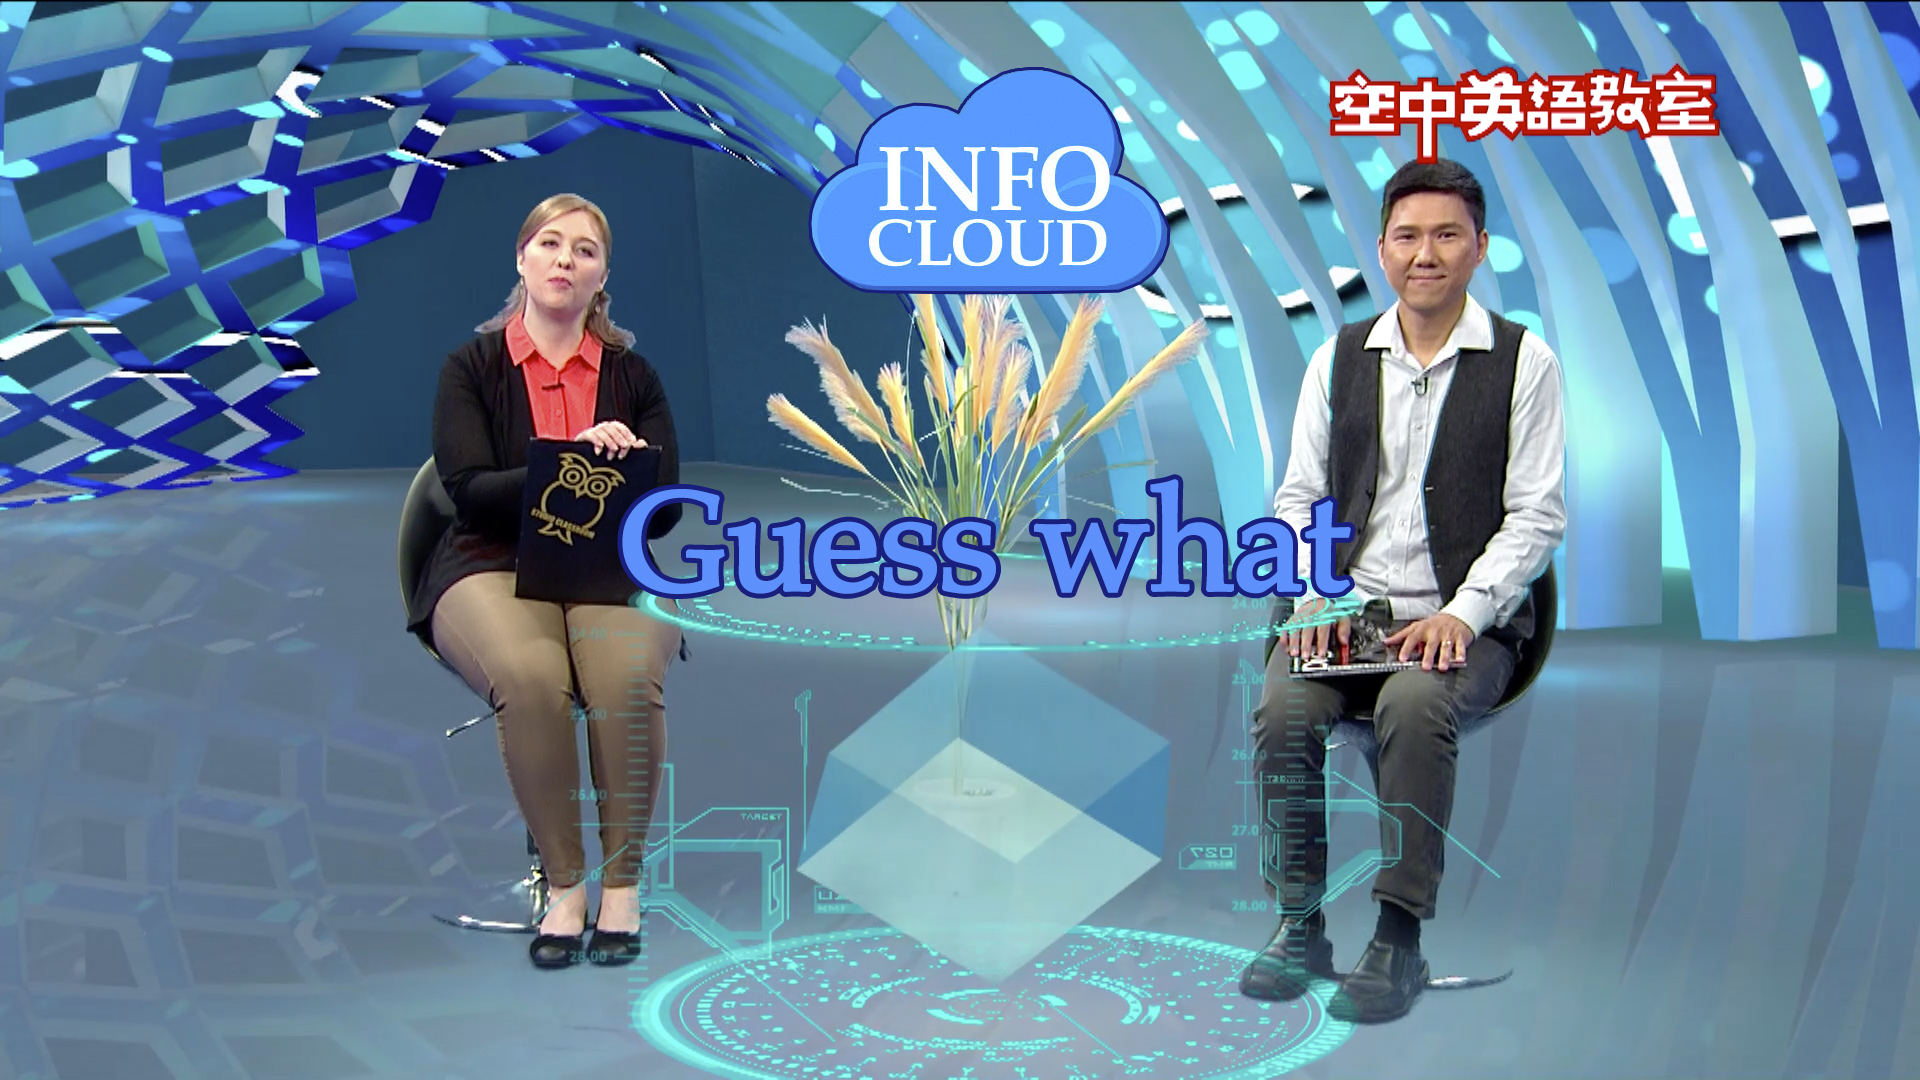 【Info Cloud】Guess What